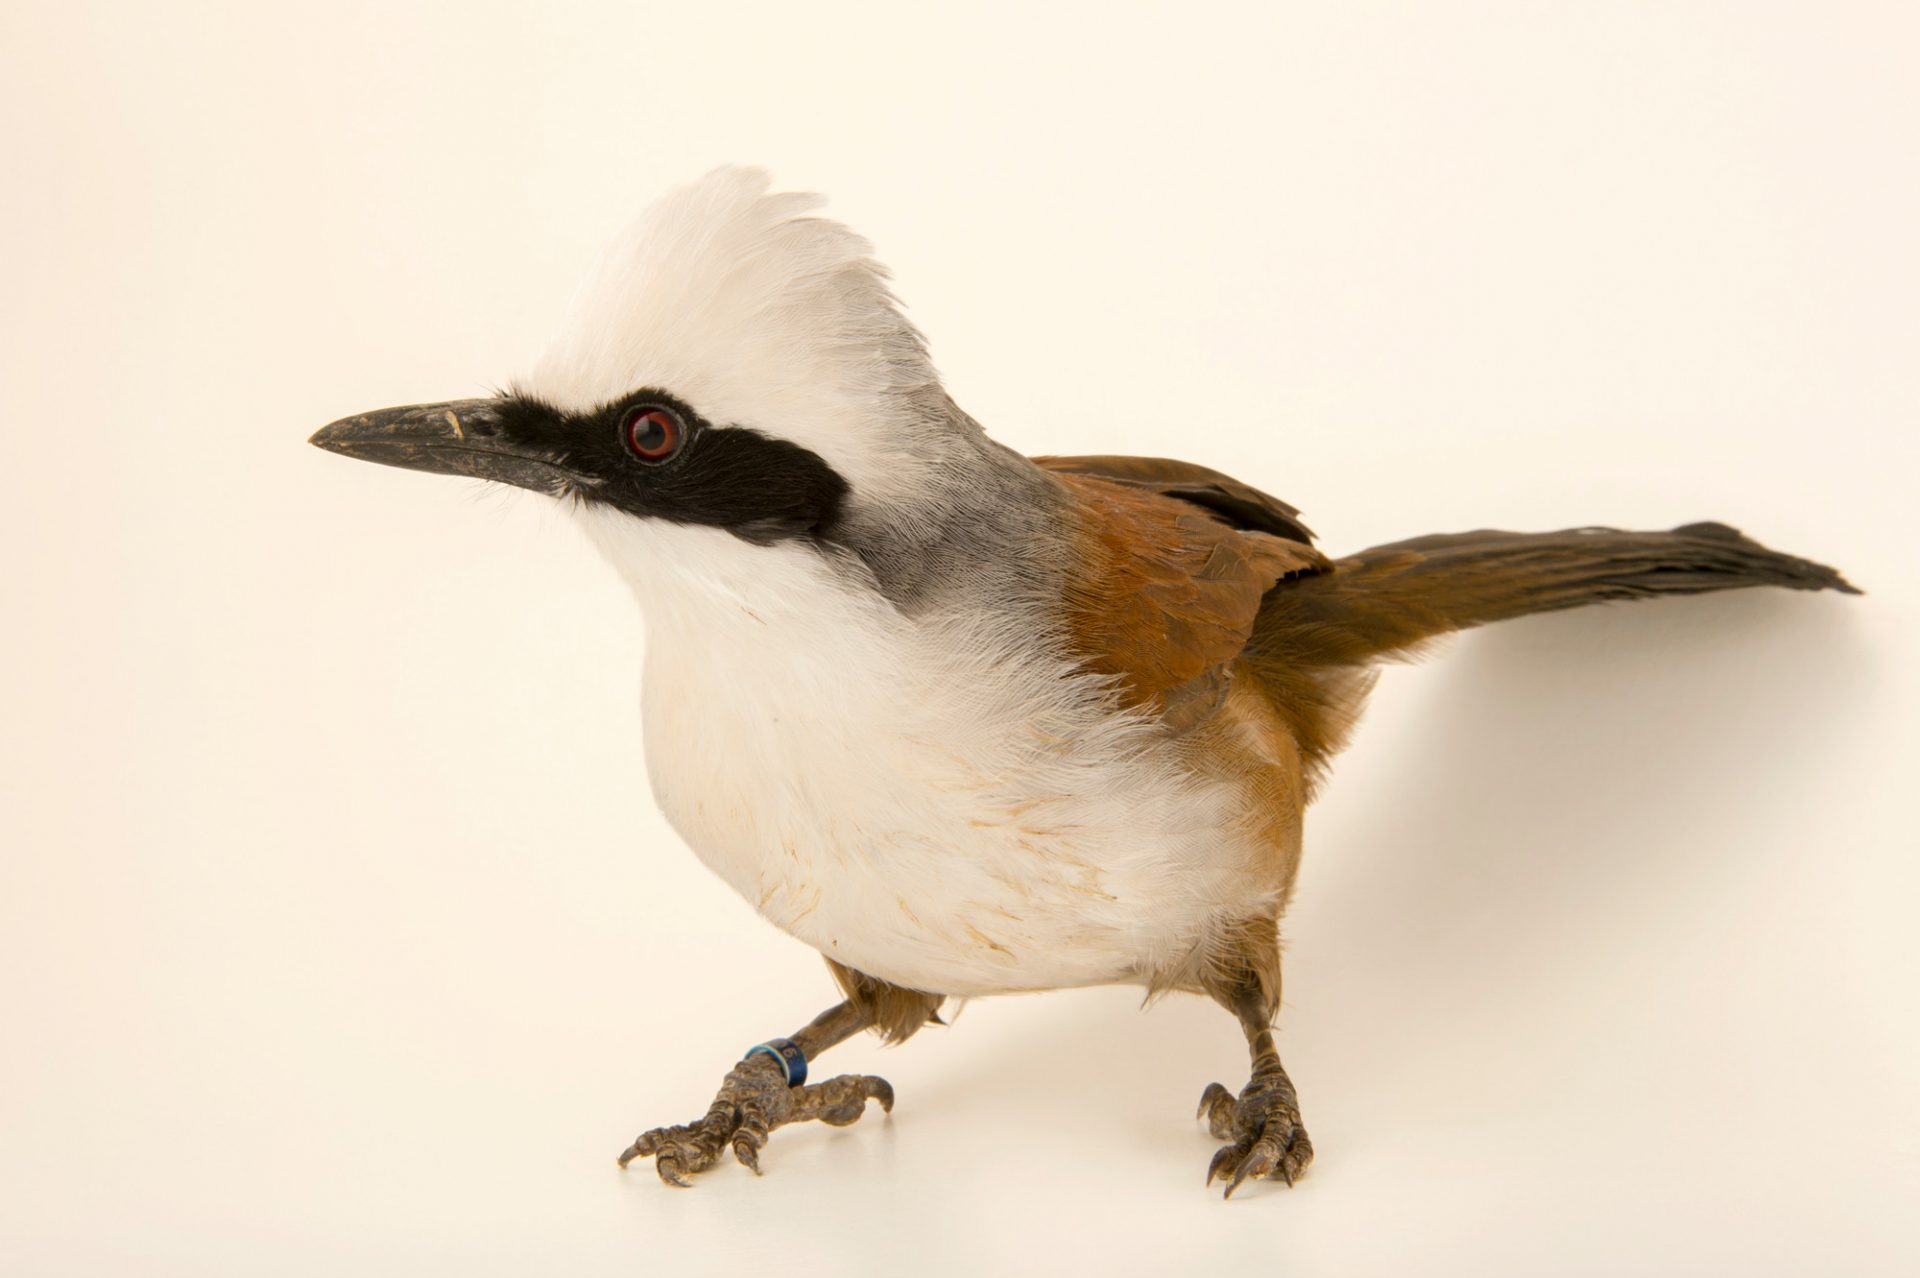 Photo: White crested laughingthrush (Garrulax leucolophus diardi) at the Plzen Zoo in the Czech Republic.